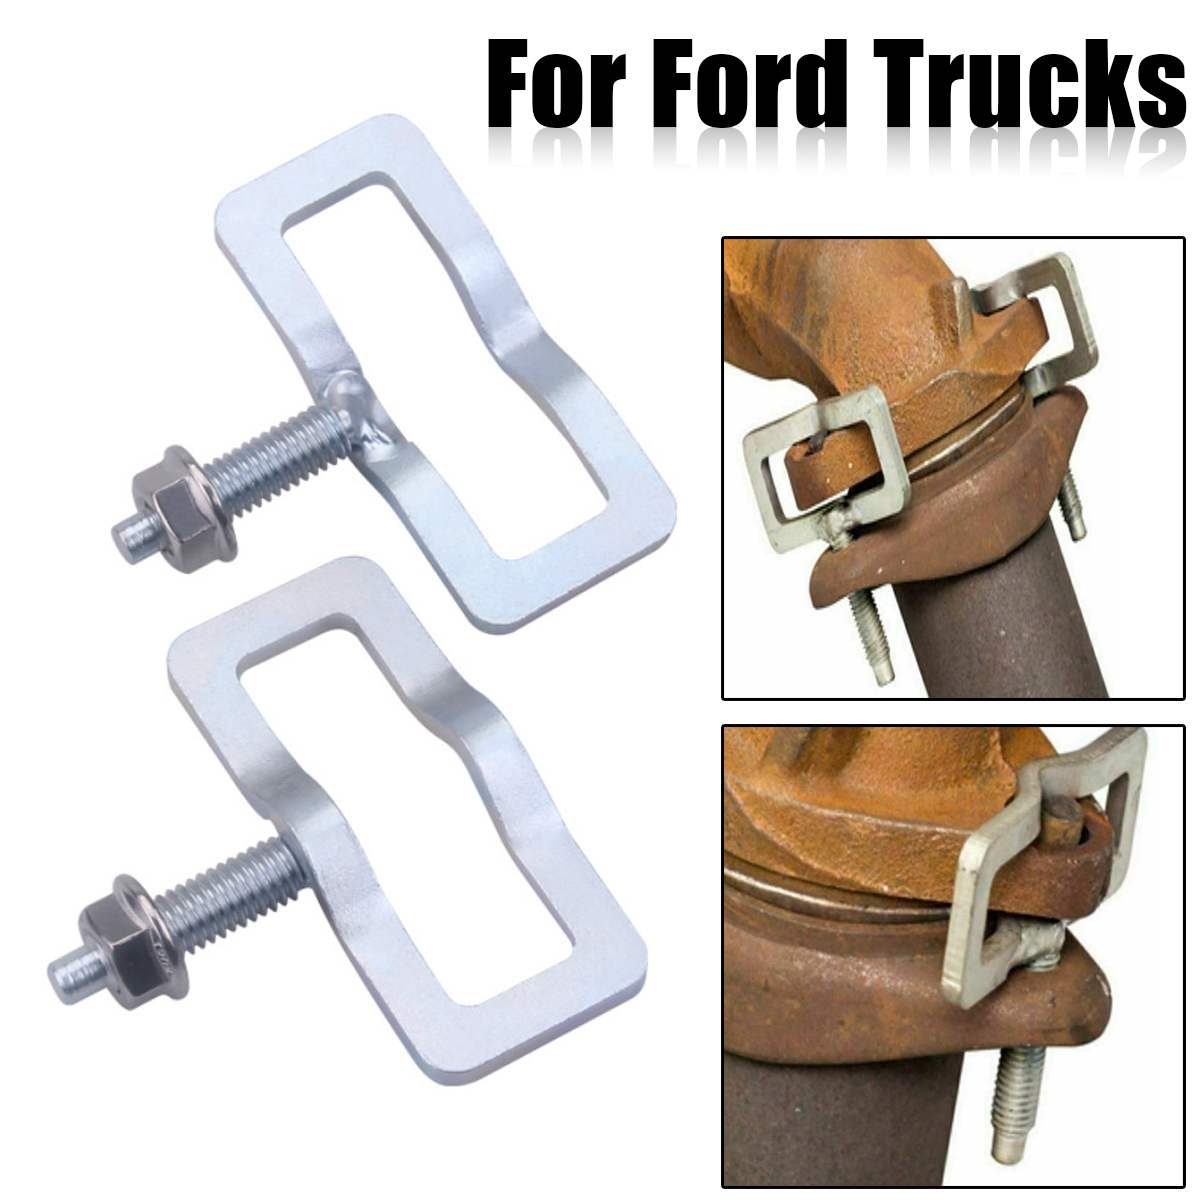 NEW Exhaust Manifold Repair Kit Studs Clamp For Ford Truck Replace System Includes 2 Clamps 2 Studs